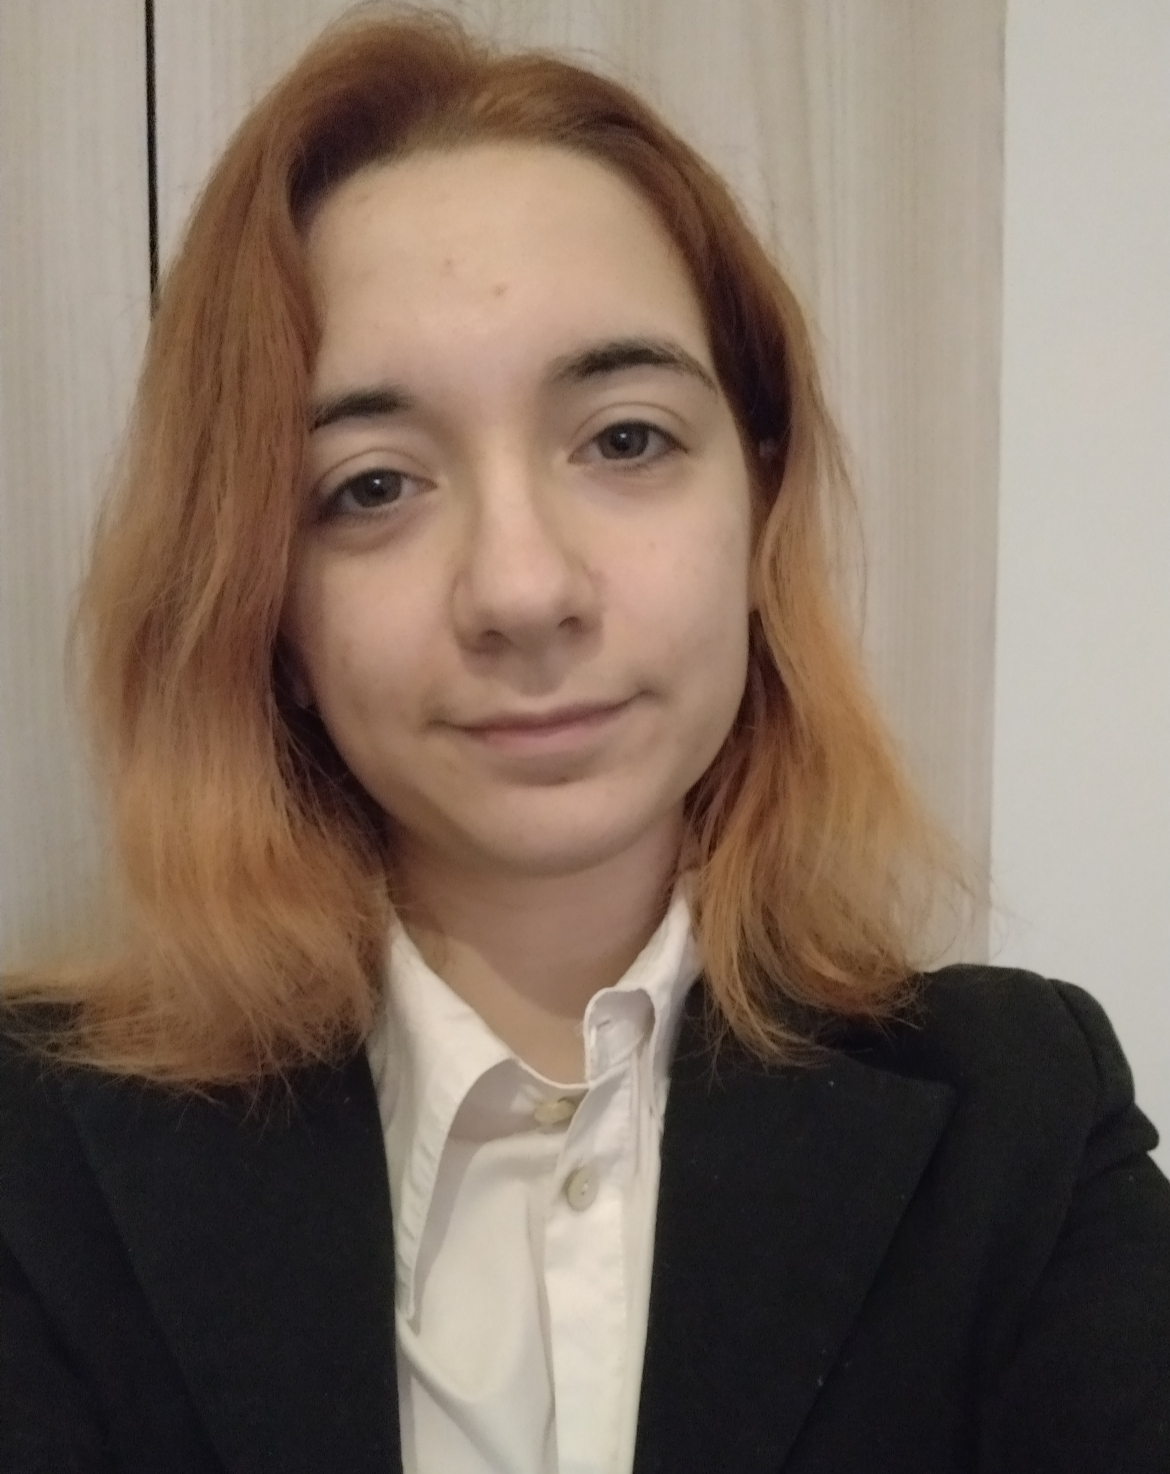 Giulia Zangirolami - English al Italian translator